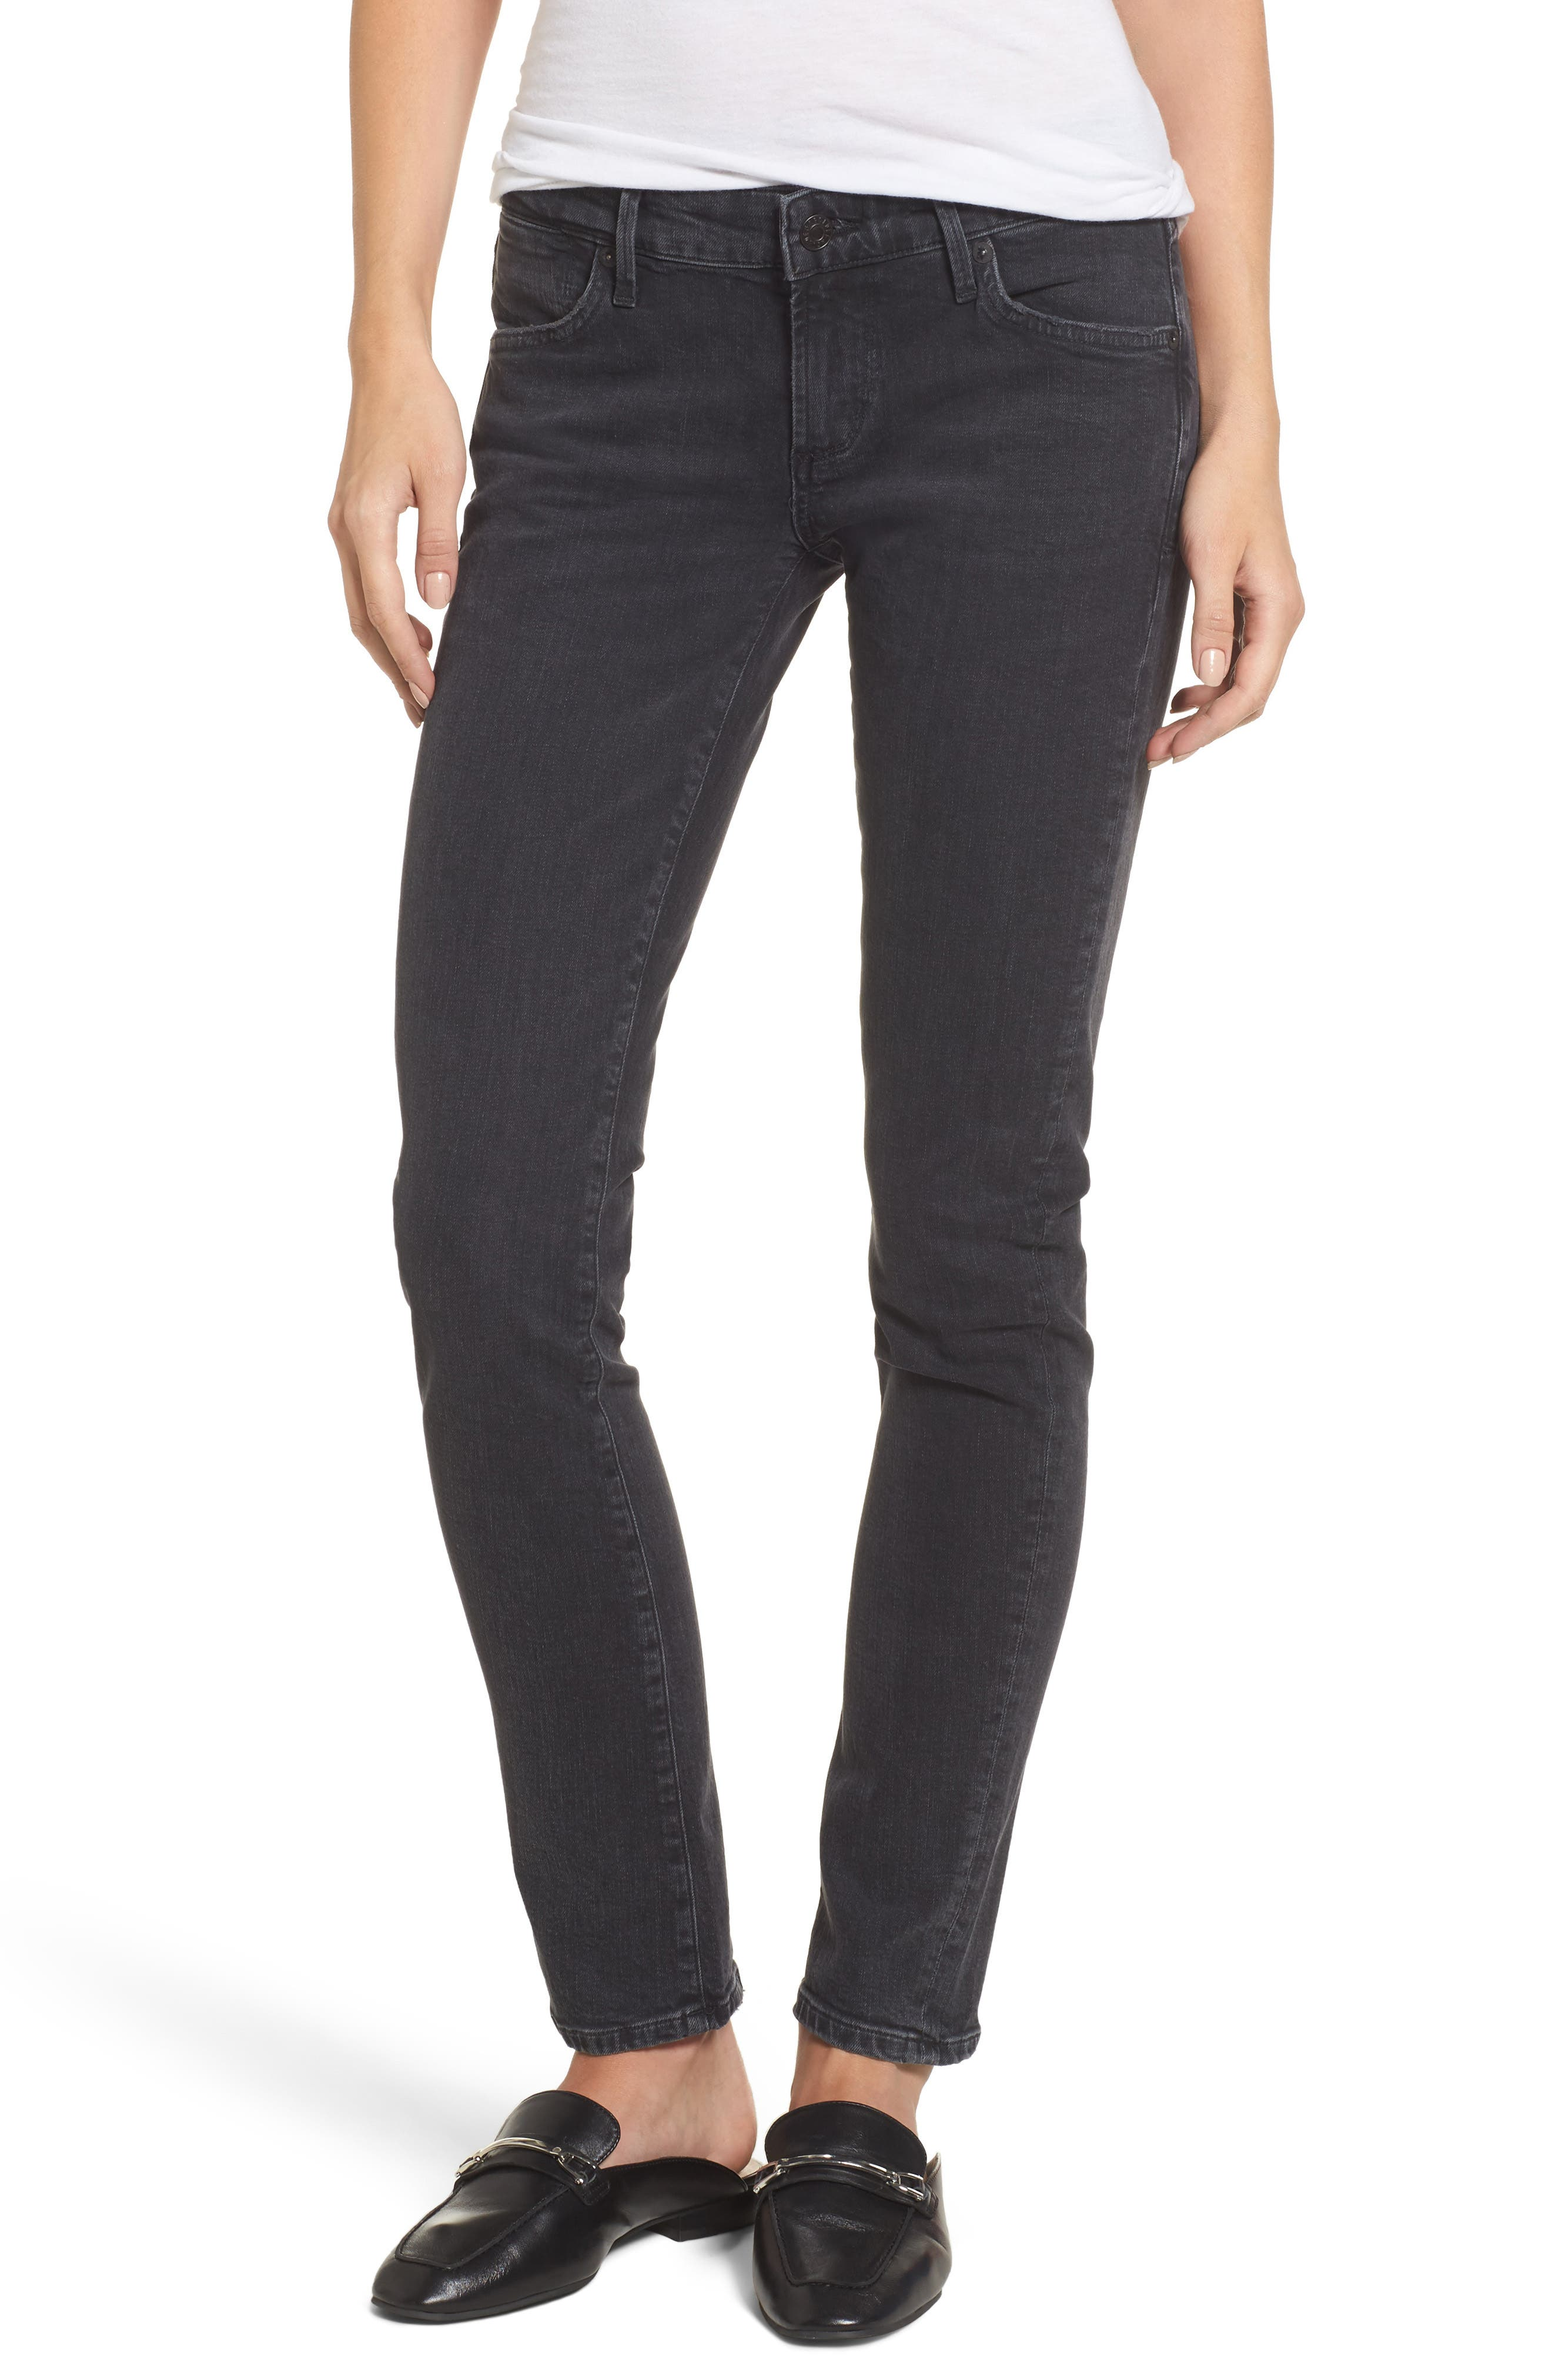 Chloe Low Rise Slim Jeans,                         Main,                         color, Chelsea